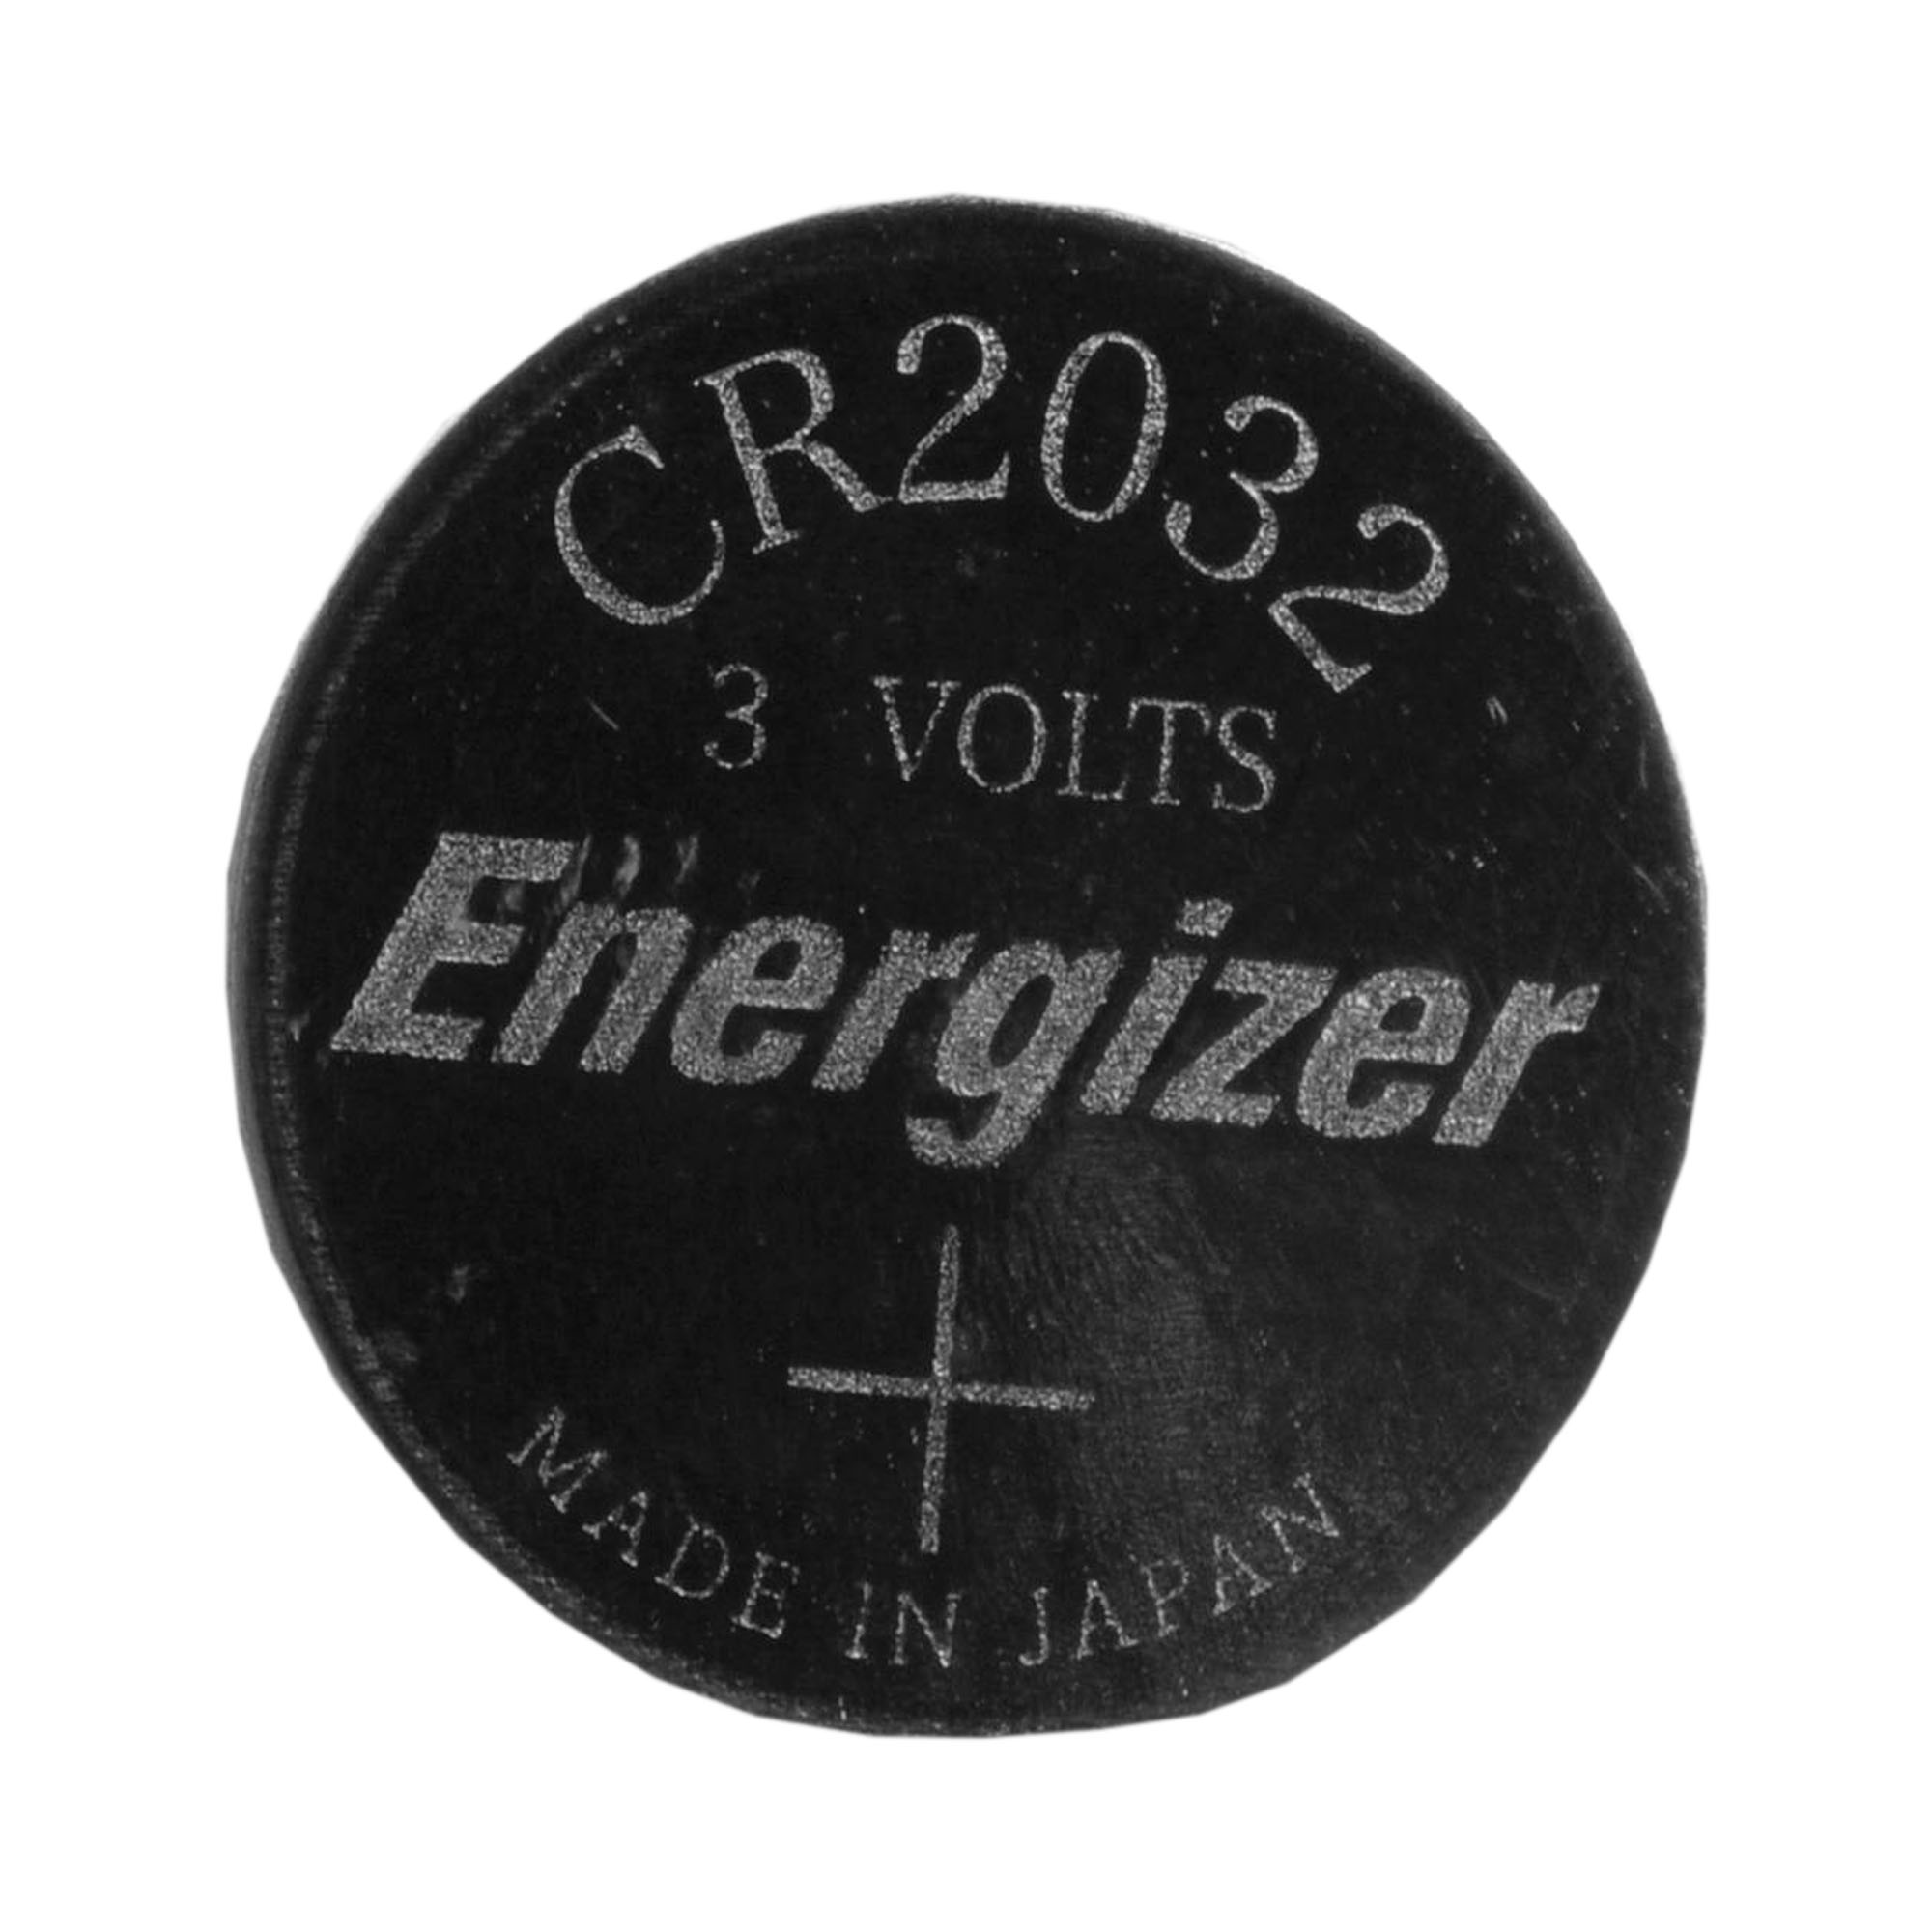 Cr2032 Battery Cr2032 Energizer 3 Volt Lithium Coin Cell Battery